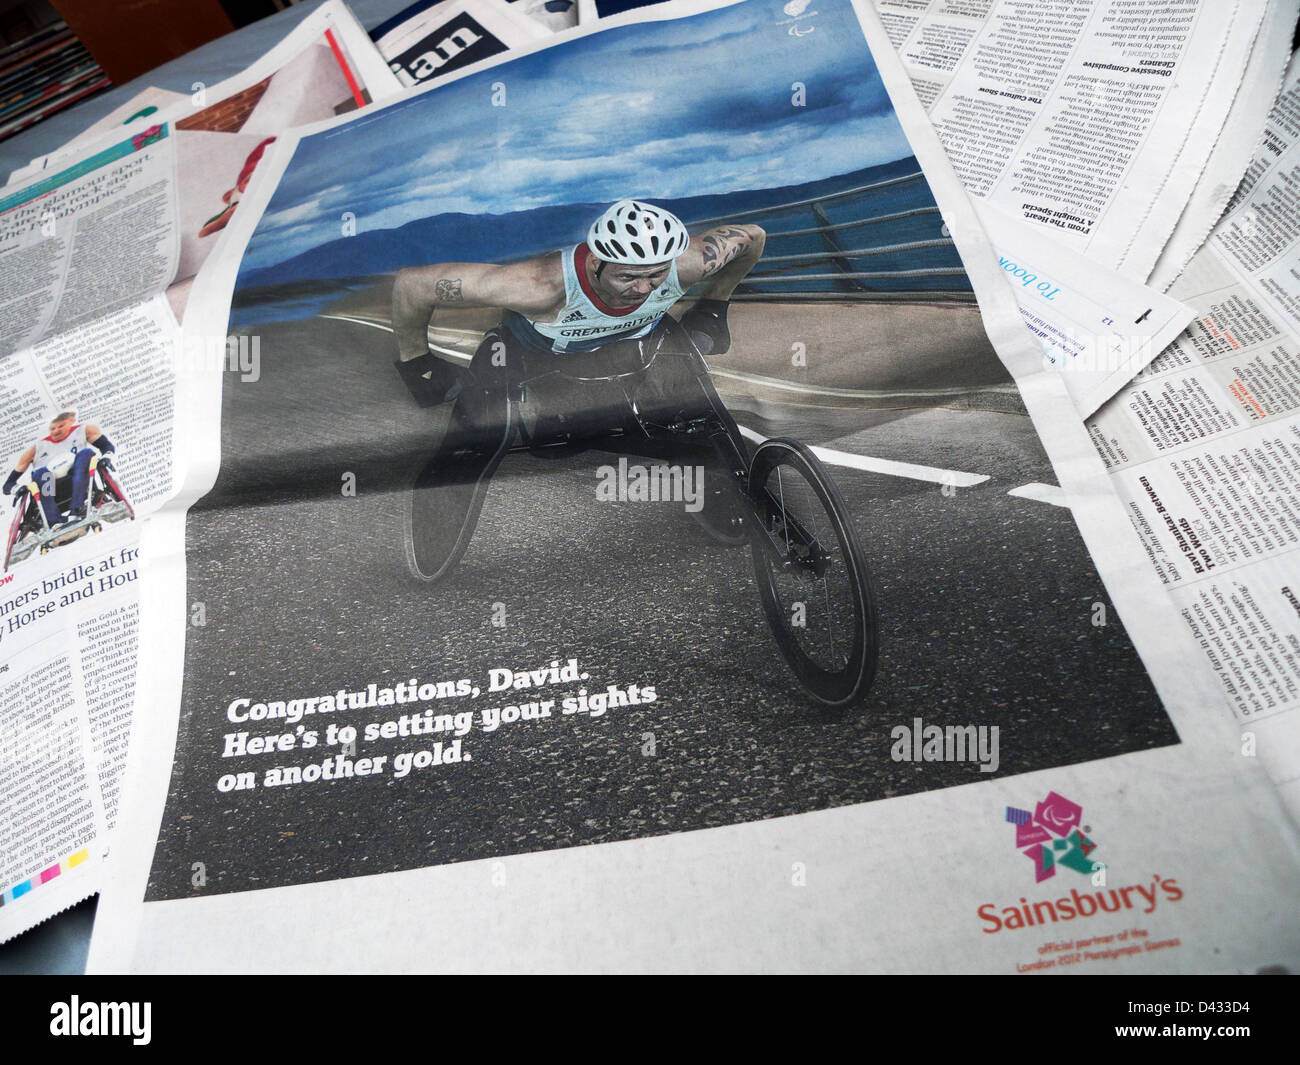 Paralympic gold medal winner David Weir and sponsor Sainsbury's advert in a broadsheet newspaper London England - Stock Image